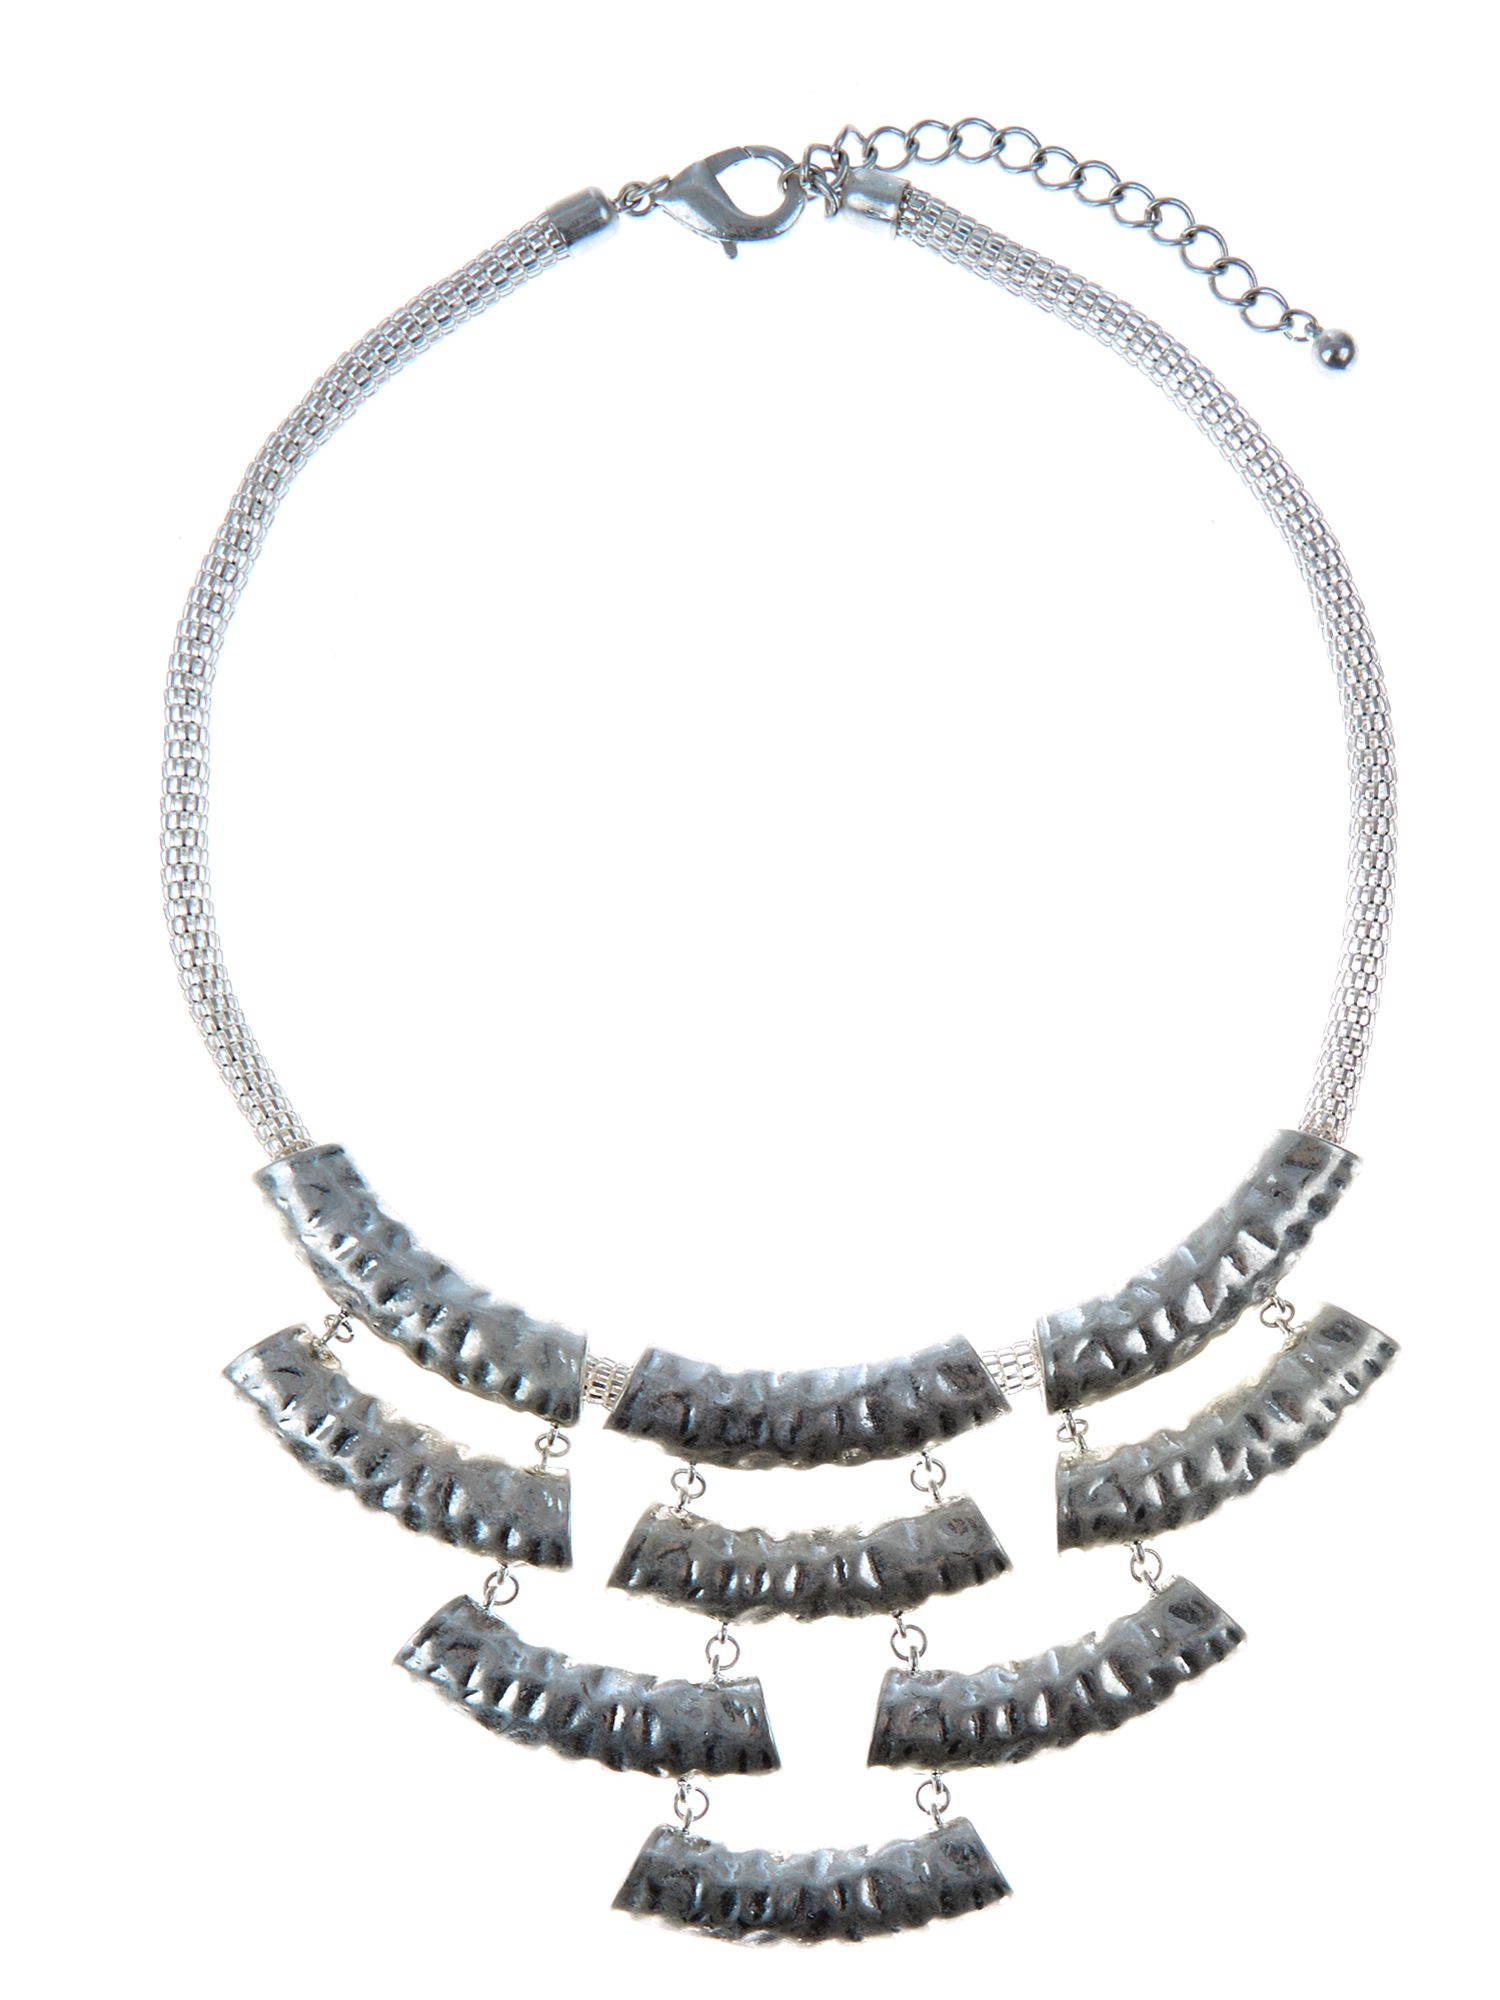 Hammered bib necklace